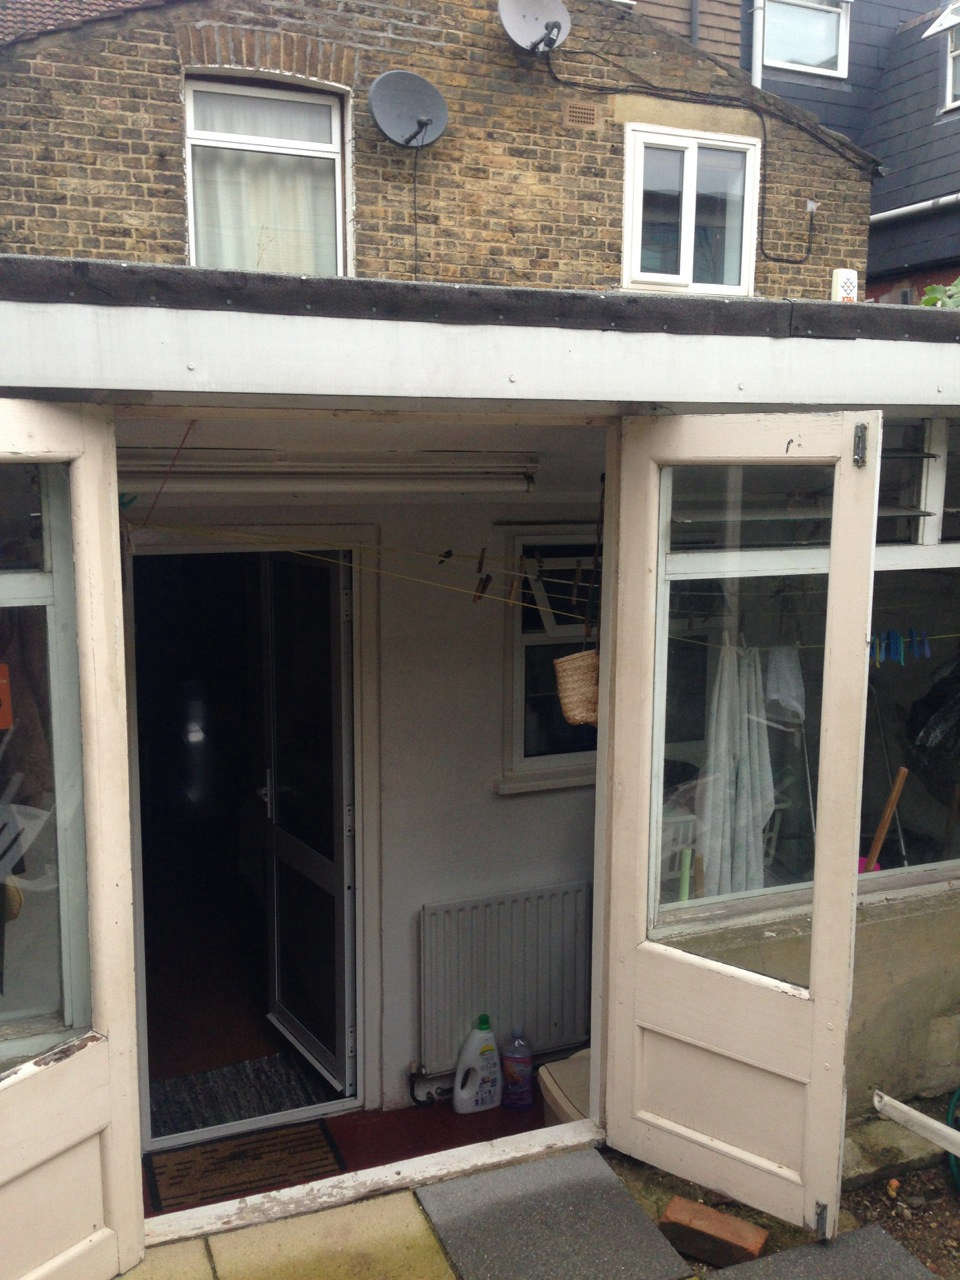 In a prior renovation, a glassed-in narrow porch had been tacked onto the back of the house.